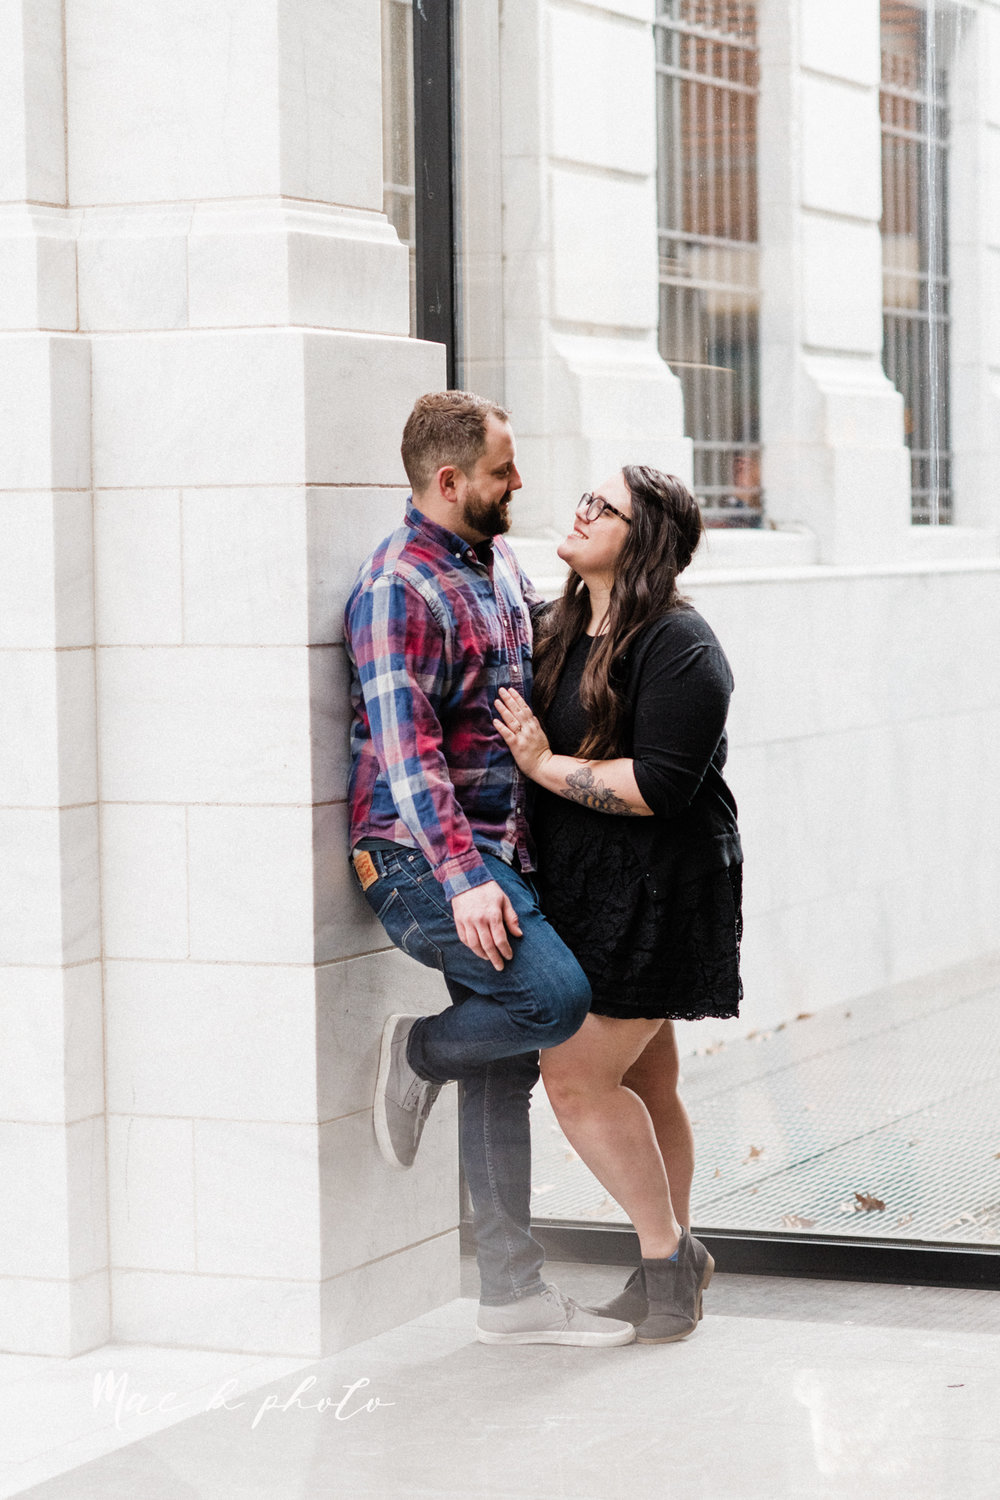 brad and kaitlin's winter museum engagement session at the cleveland museum of art and the cleveland natural history museum and the botanical gardens in cleveland ohio photographed by youngstown wedding photographer mae b photo-28.jpg